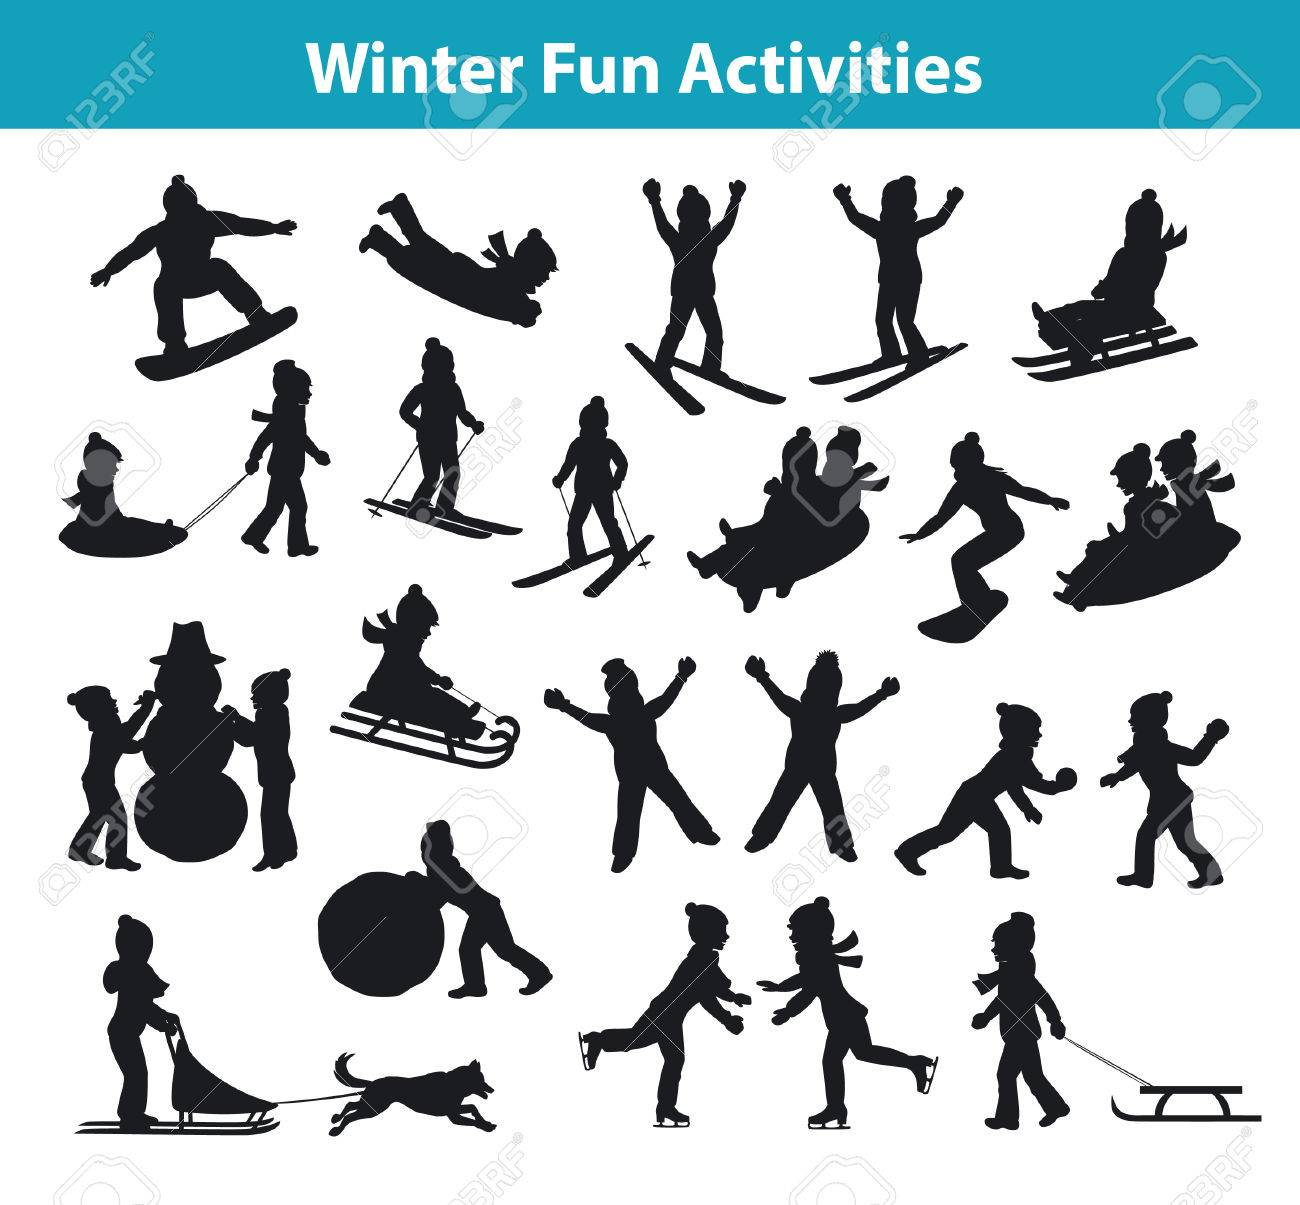 Children's Winter fun activities in ice and snow silhouette set collection, kids palying snowballs, making snowman, sledding downhill, rolling snow, skating, snowboarding, skiing, riding on sleigh pulled by husky dog and lying on snow - 66467150